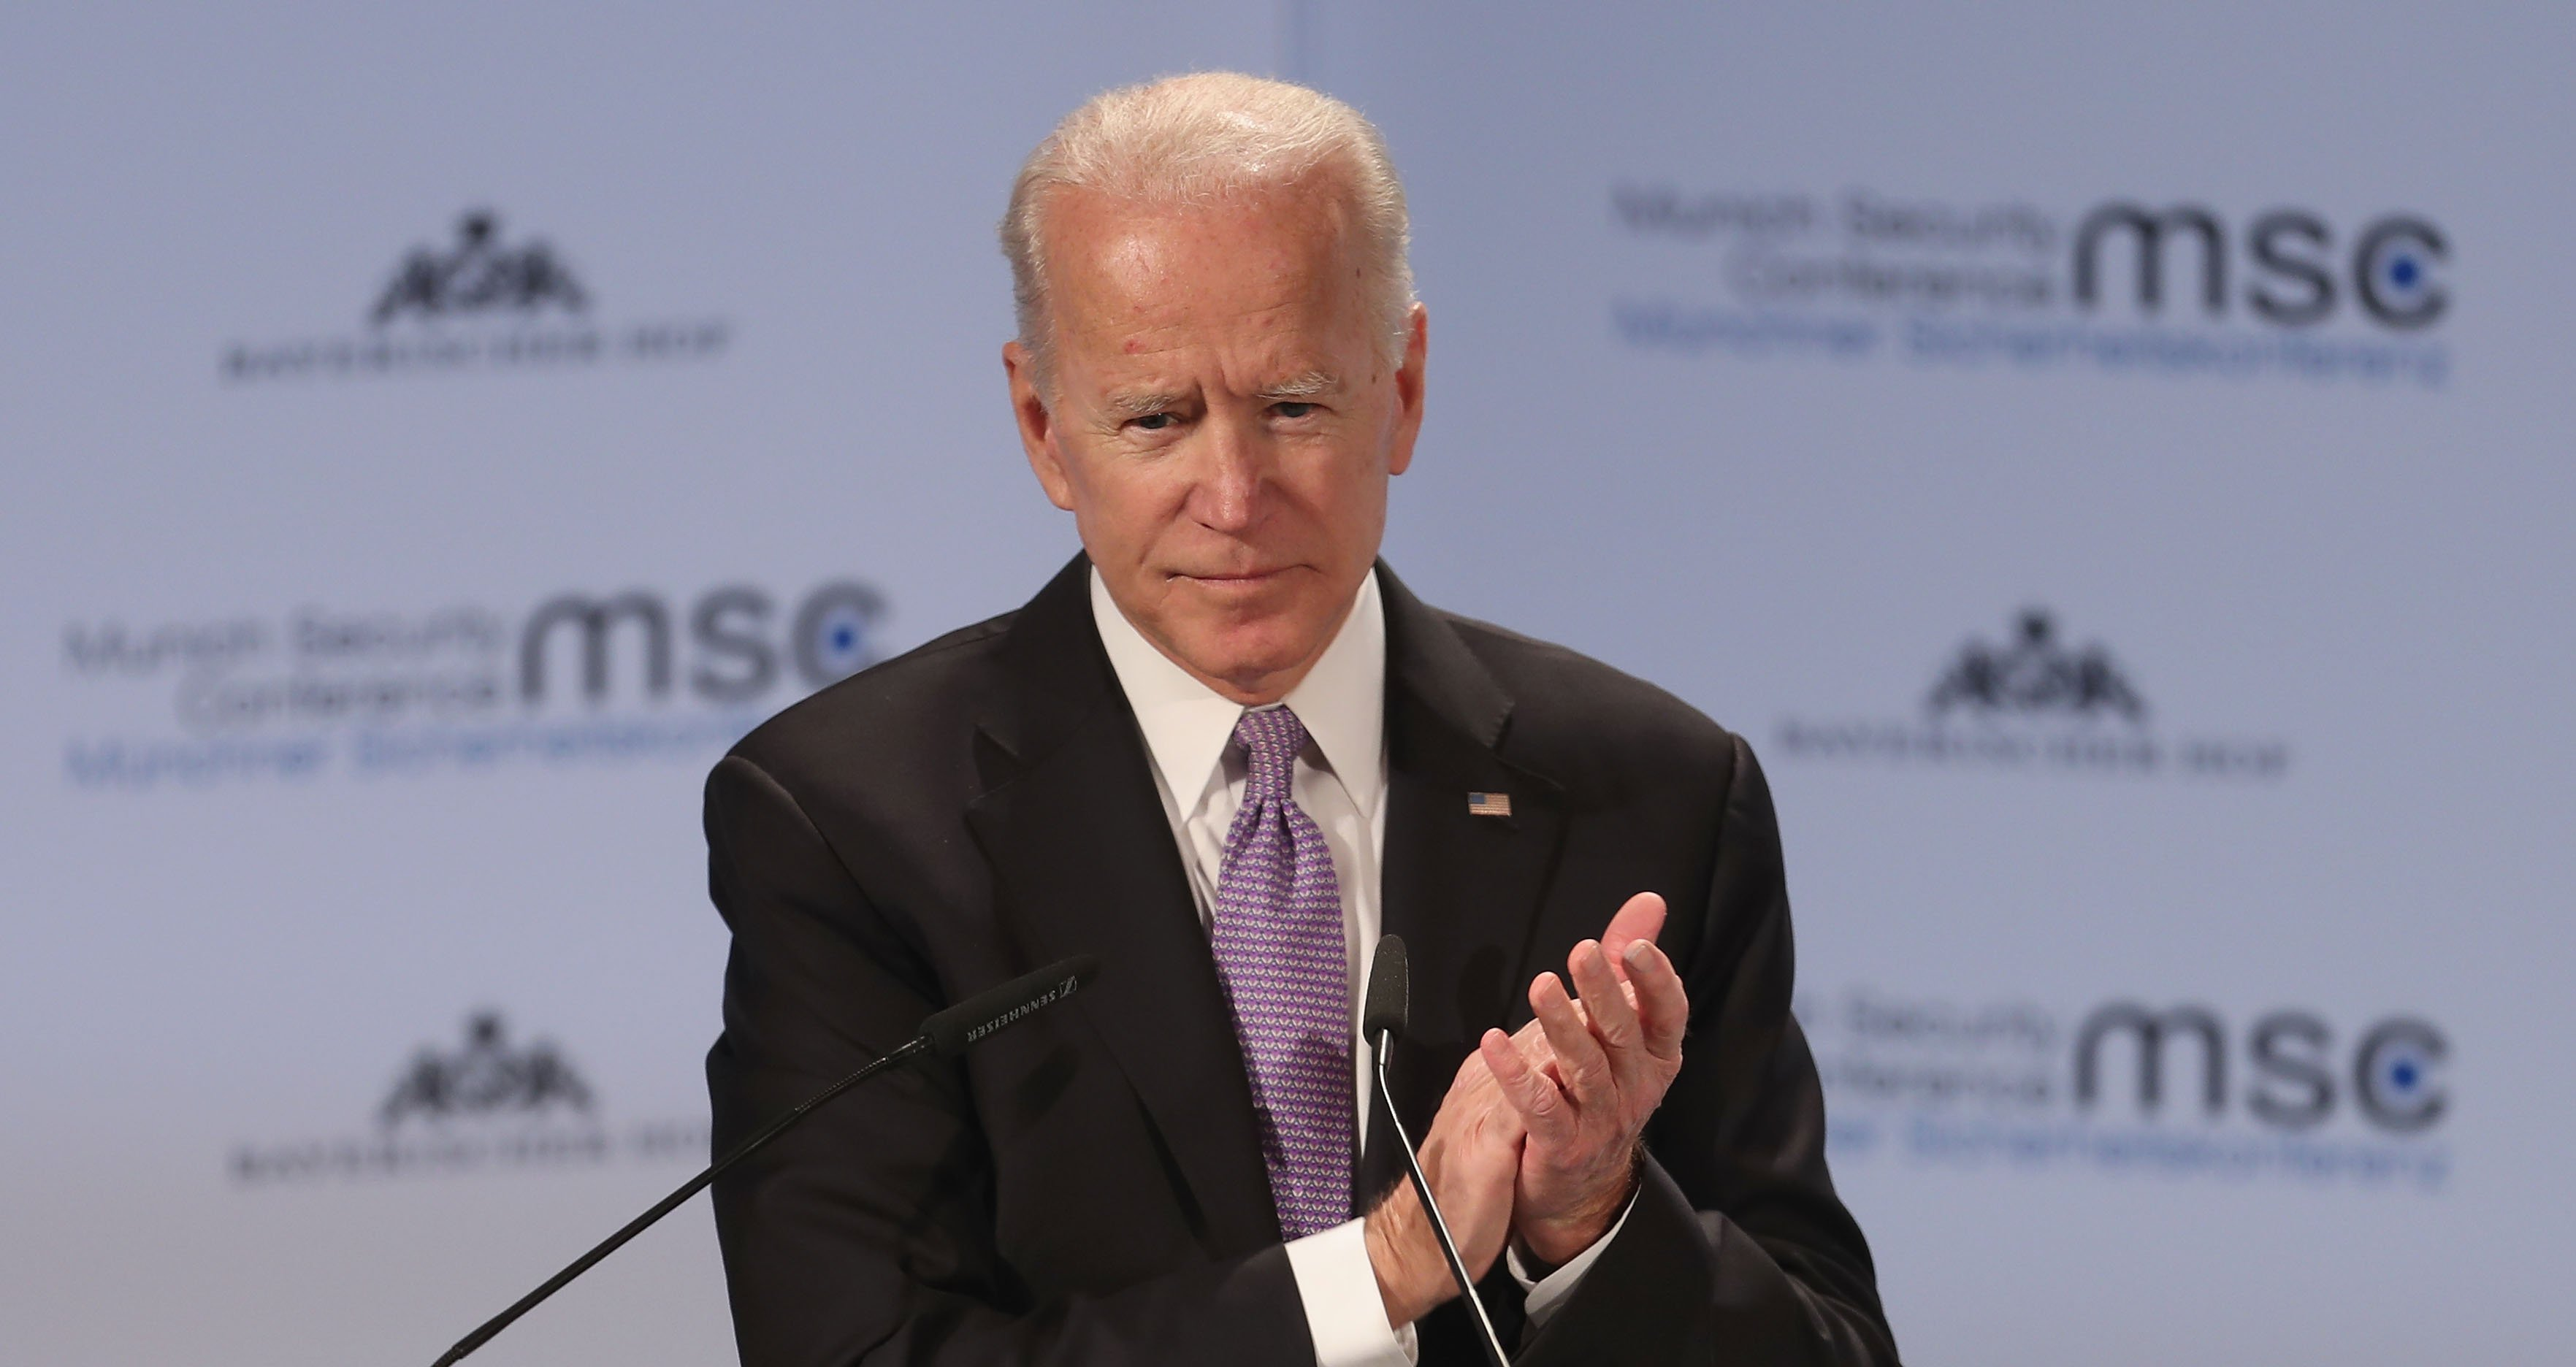 Joe Biden delivering a speech during the 55th Munich Security Conference in Munich, Germany | Photo: Getty Images